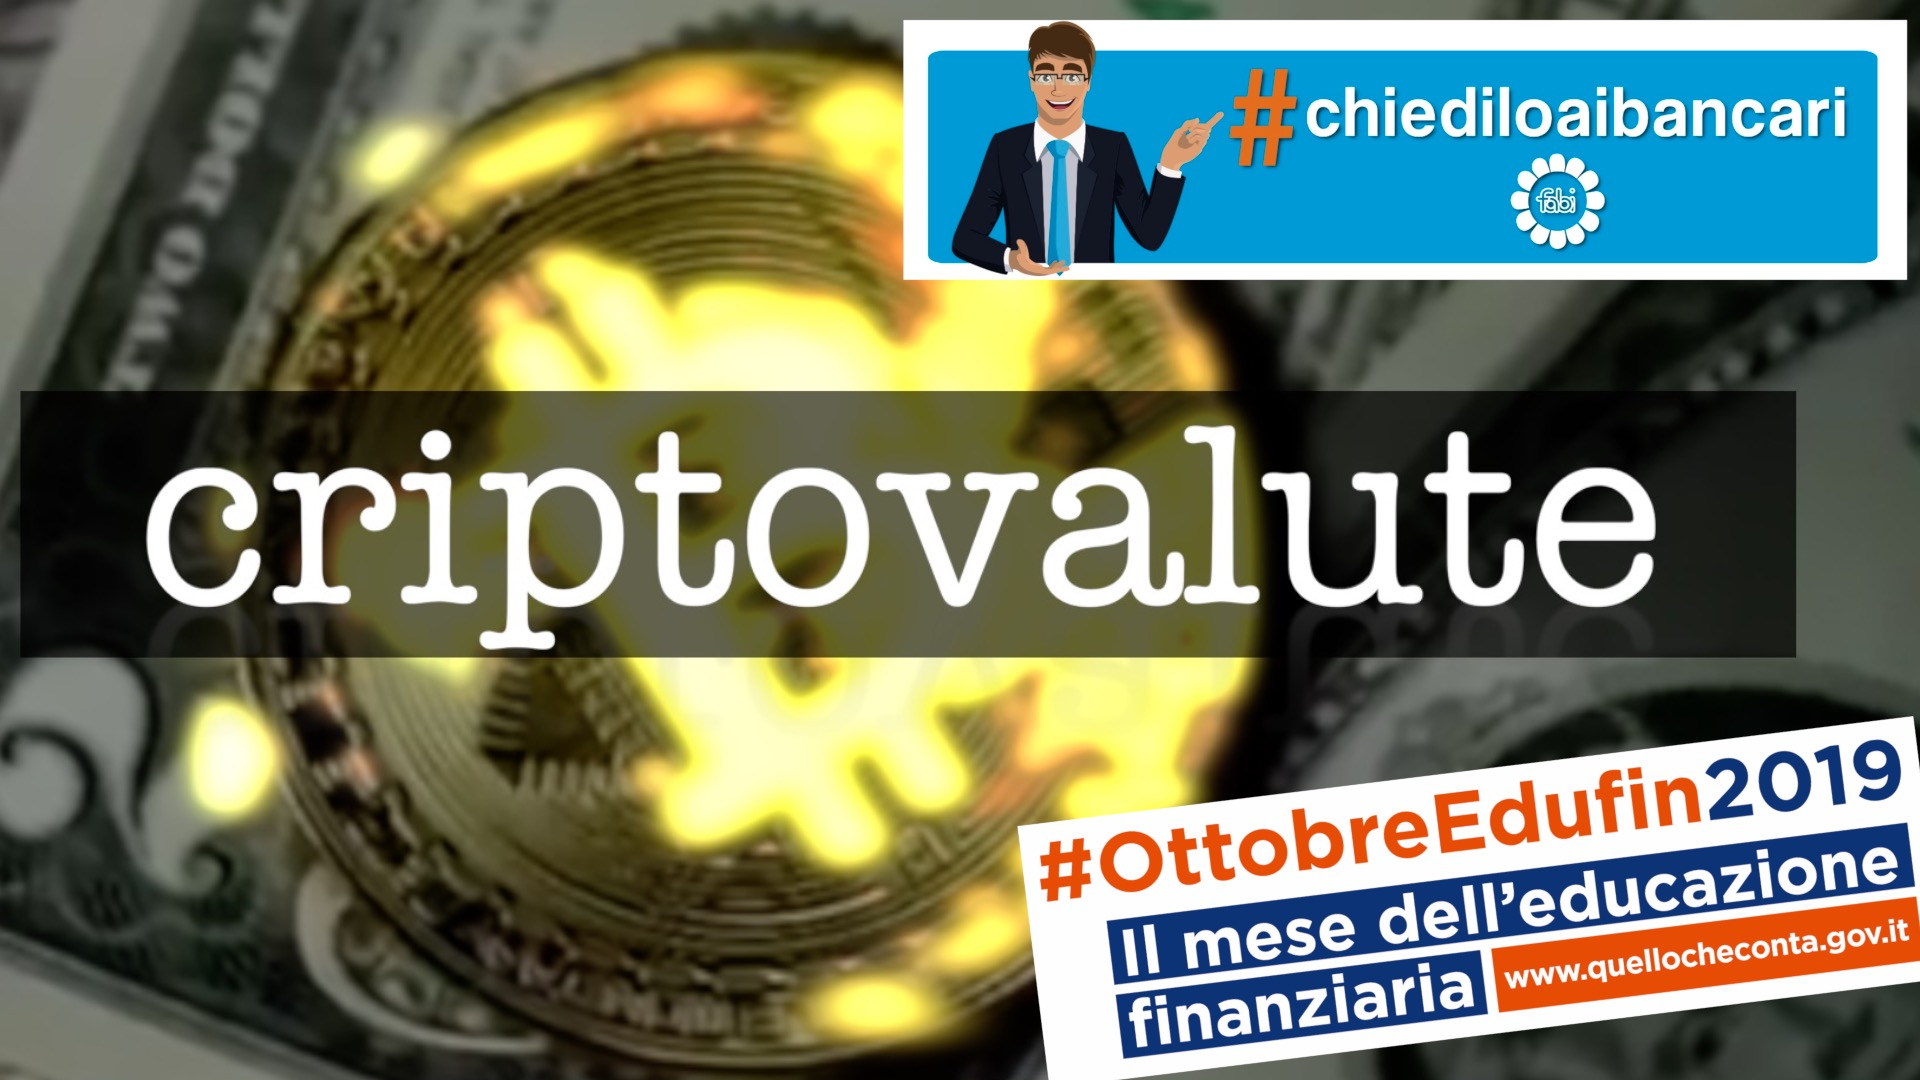 #CHIEDILOAIBANCARI, il primo video: Criptovalute